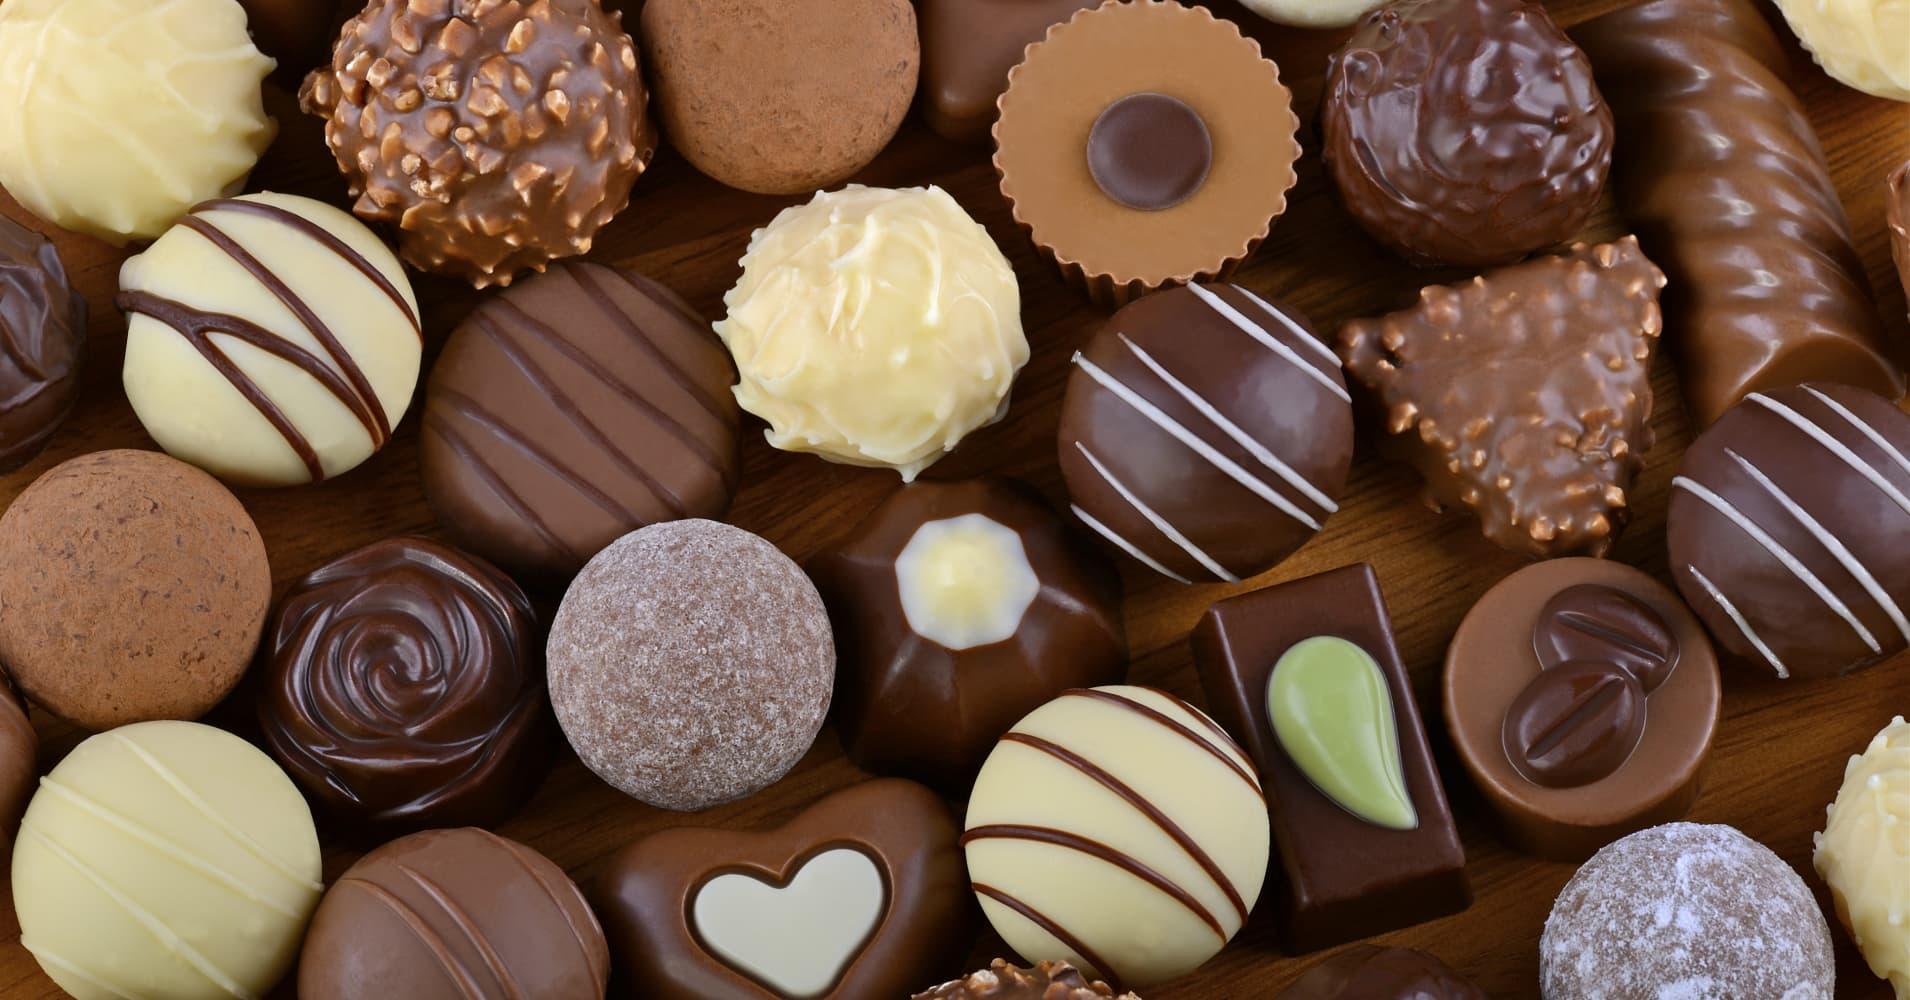 Americans Eat How Much Chocolate